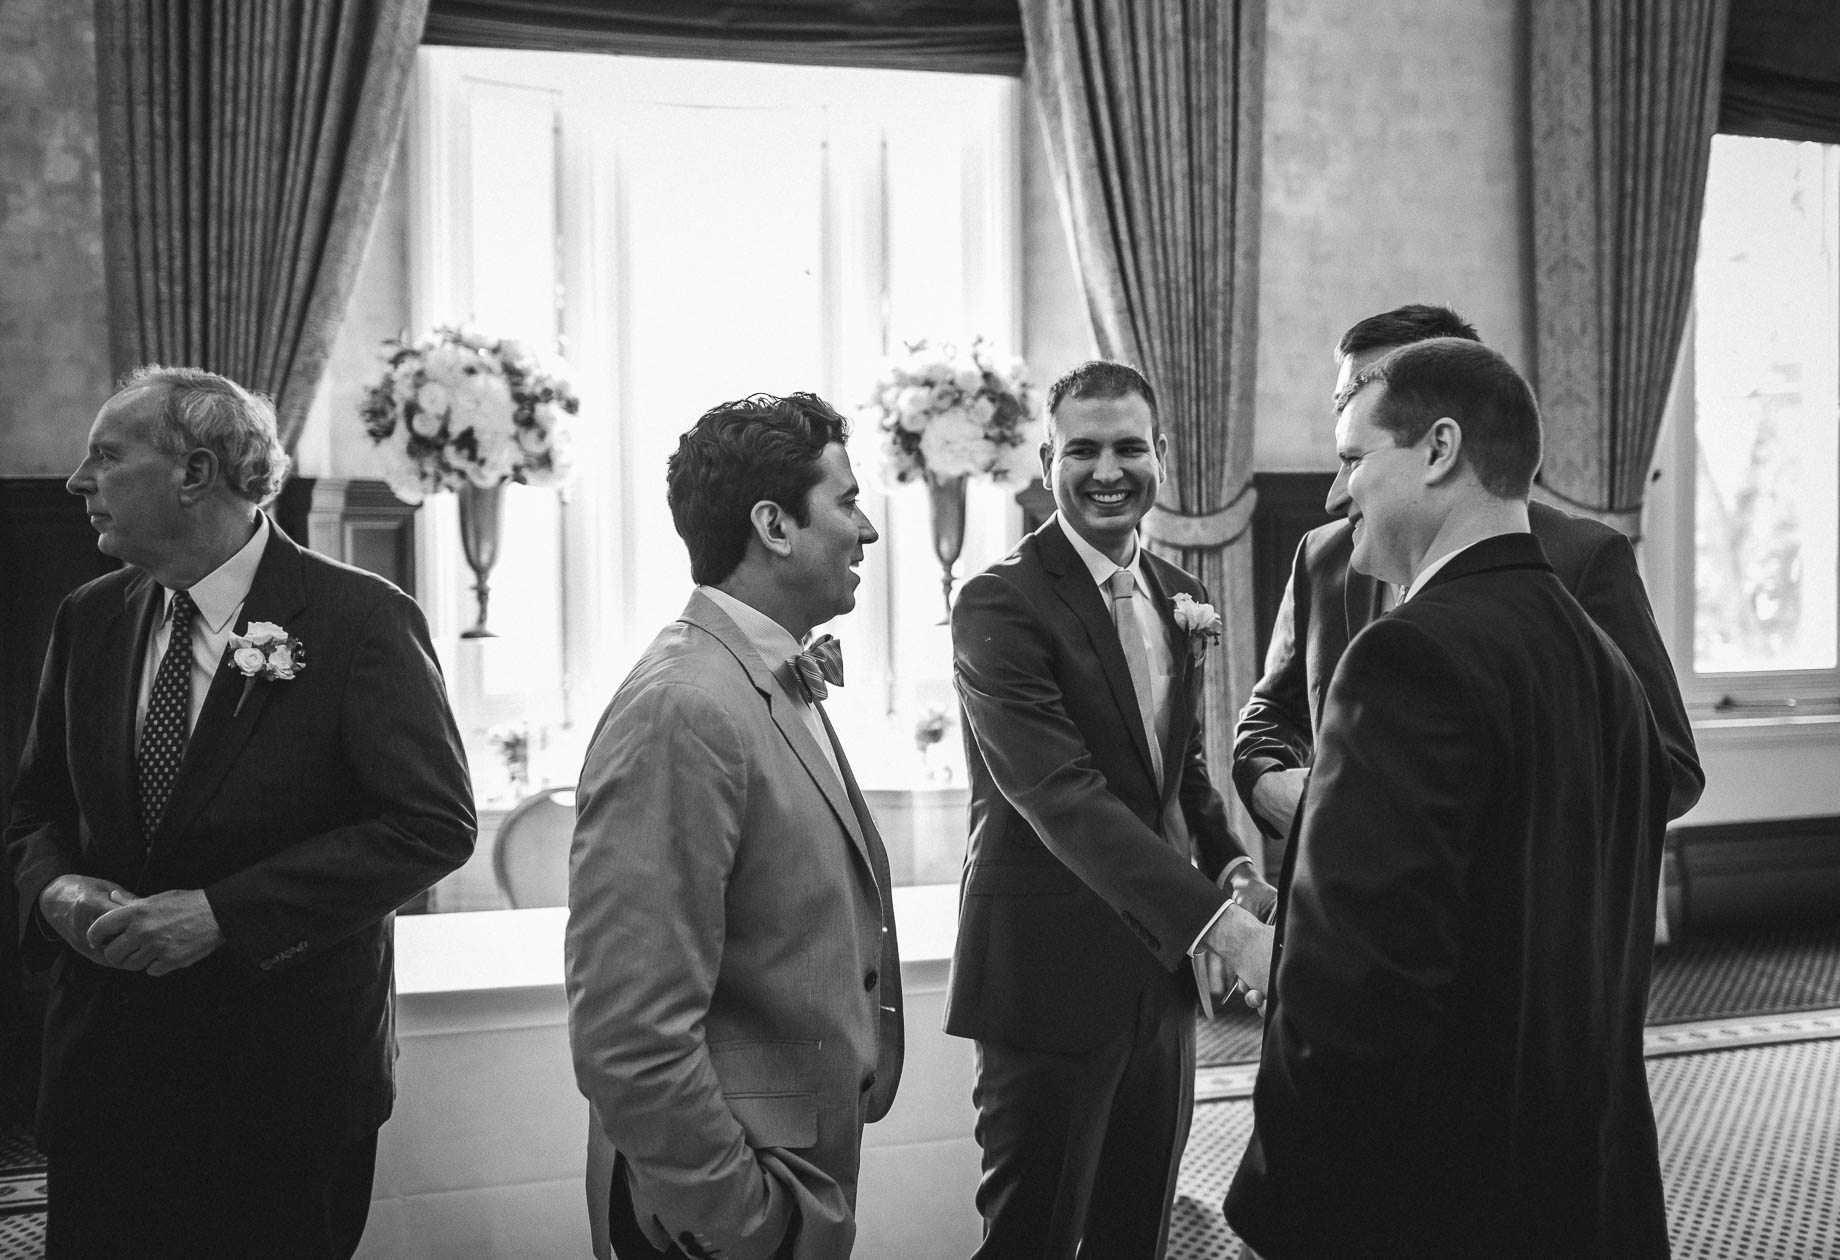 Bllomsbury House wedding photography in London - Katie and Taylor (51 of 156)